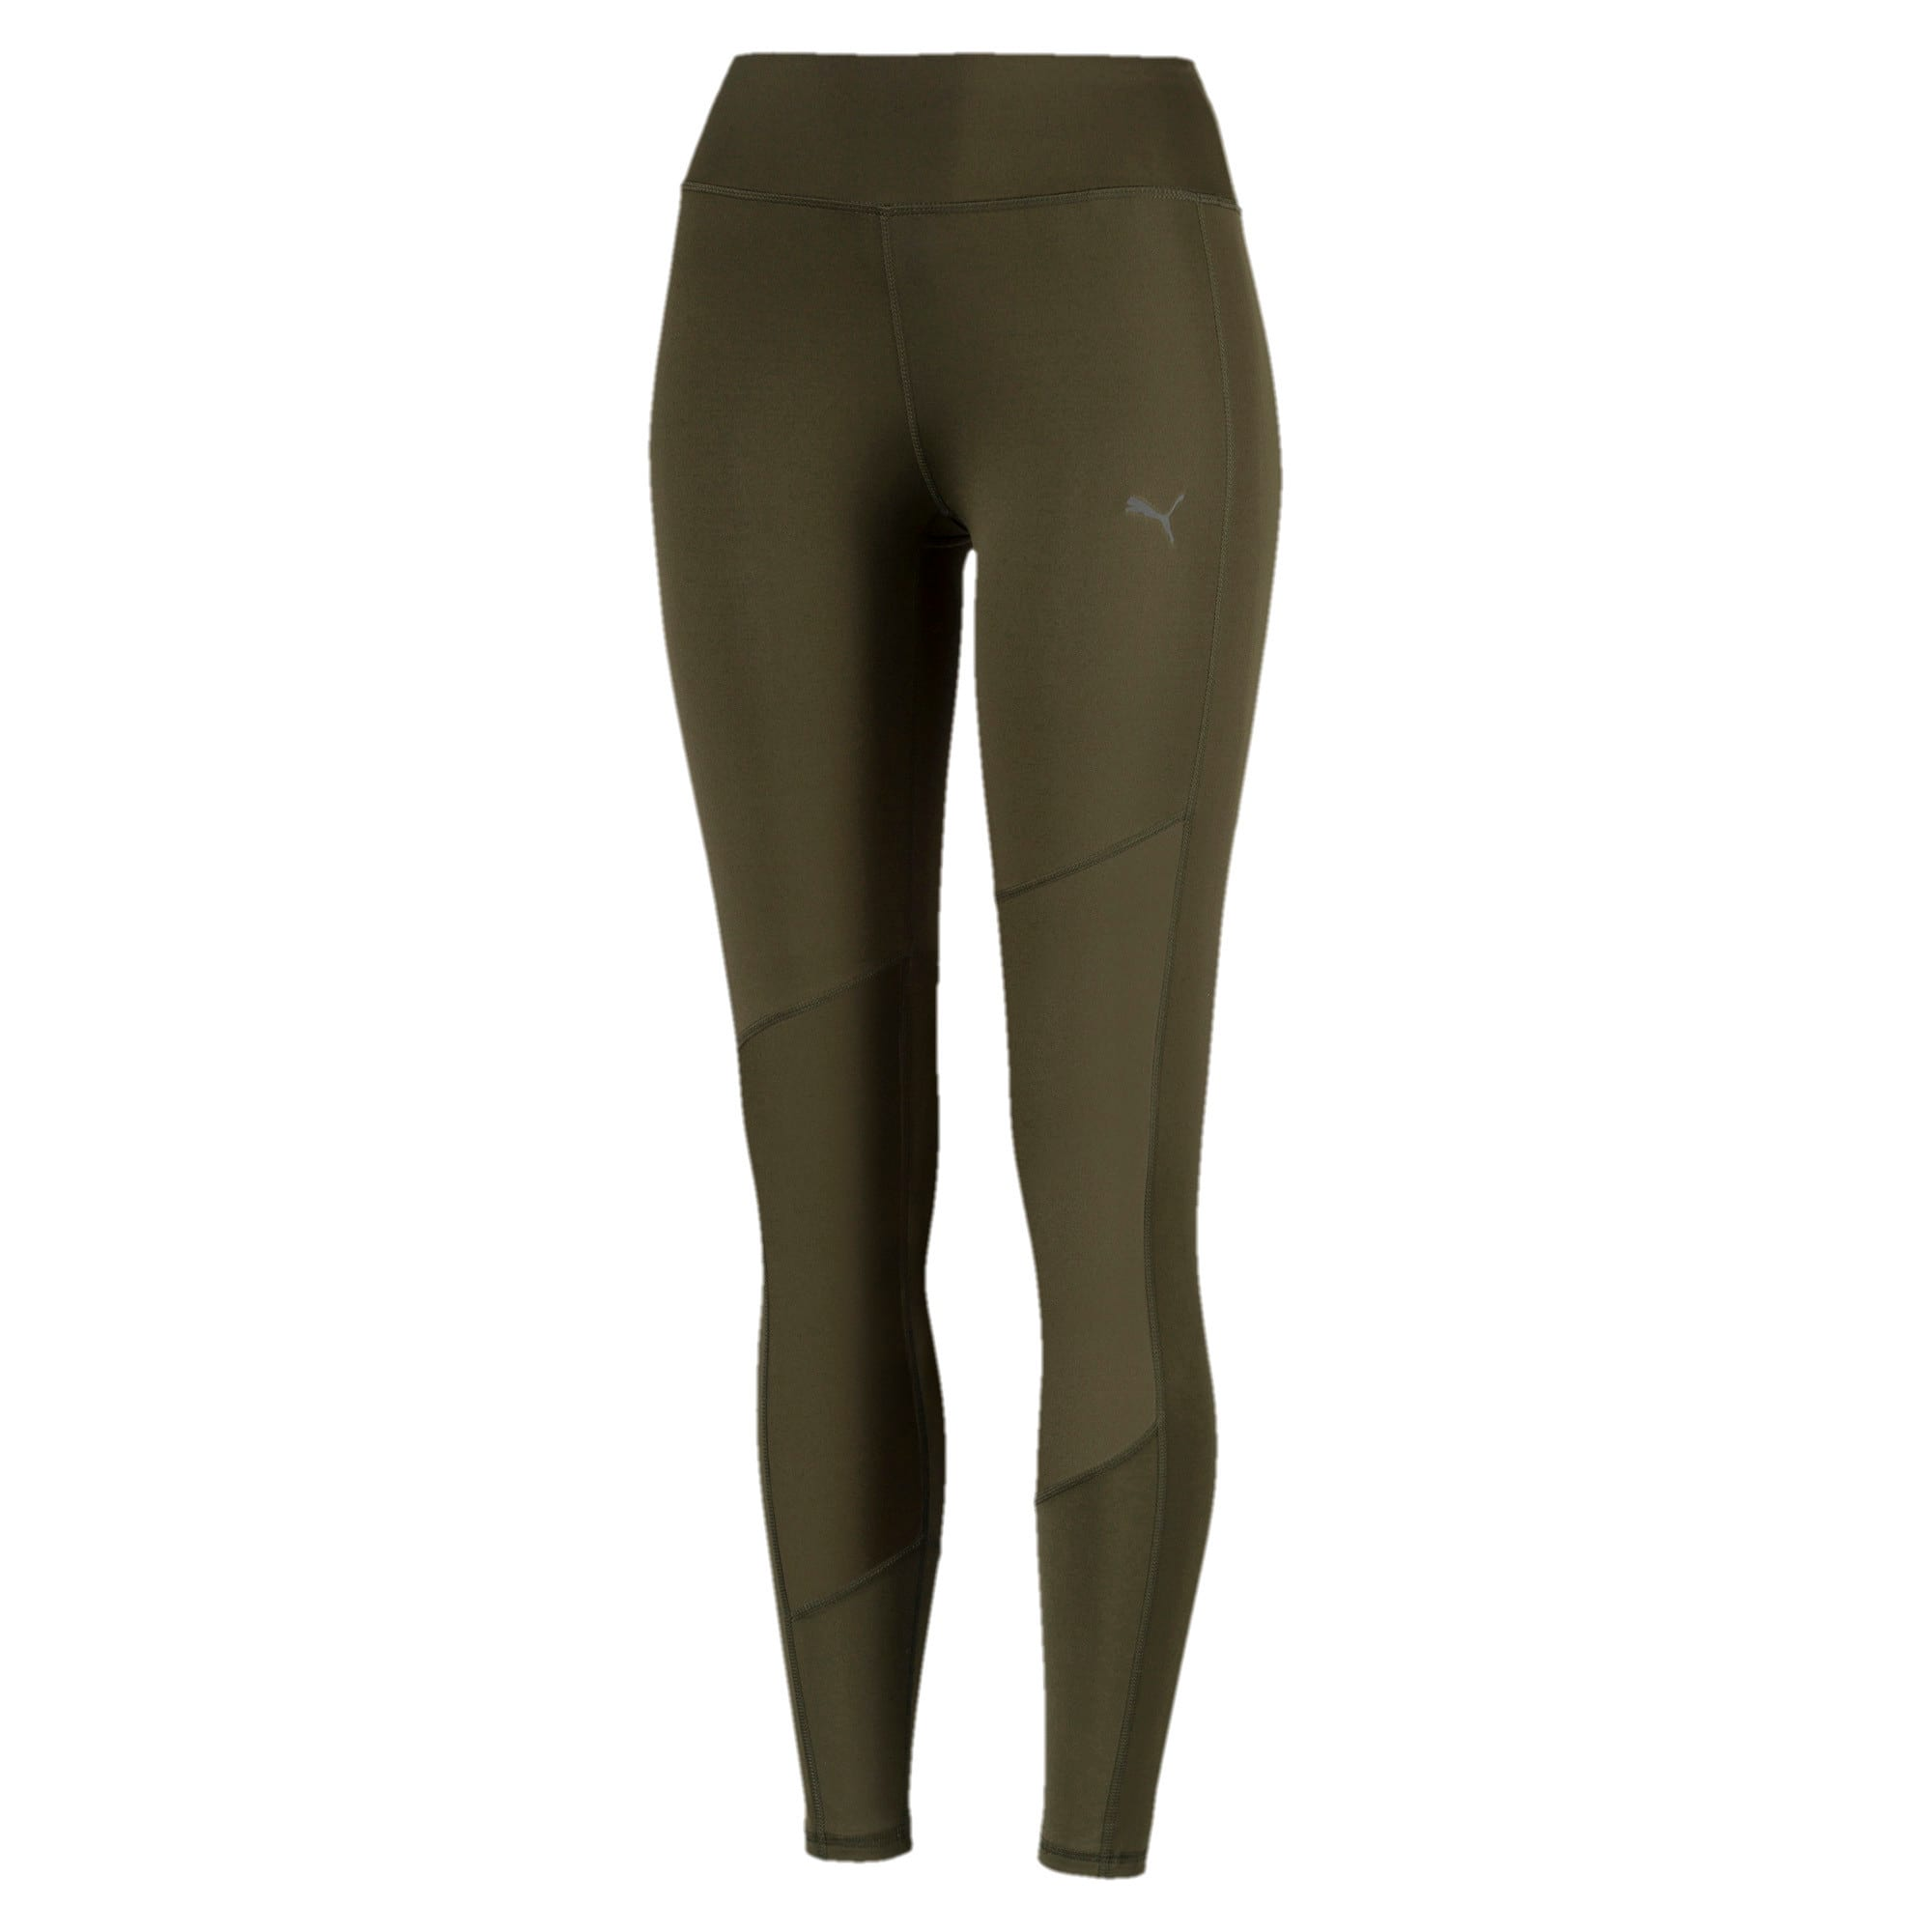 Thumbnail 3 of Always On Solid Women's 7/8 Training Leggings, Forest Night, medium-IND